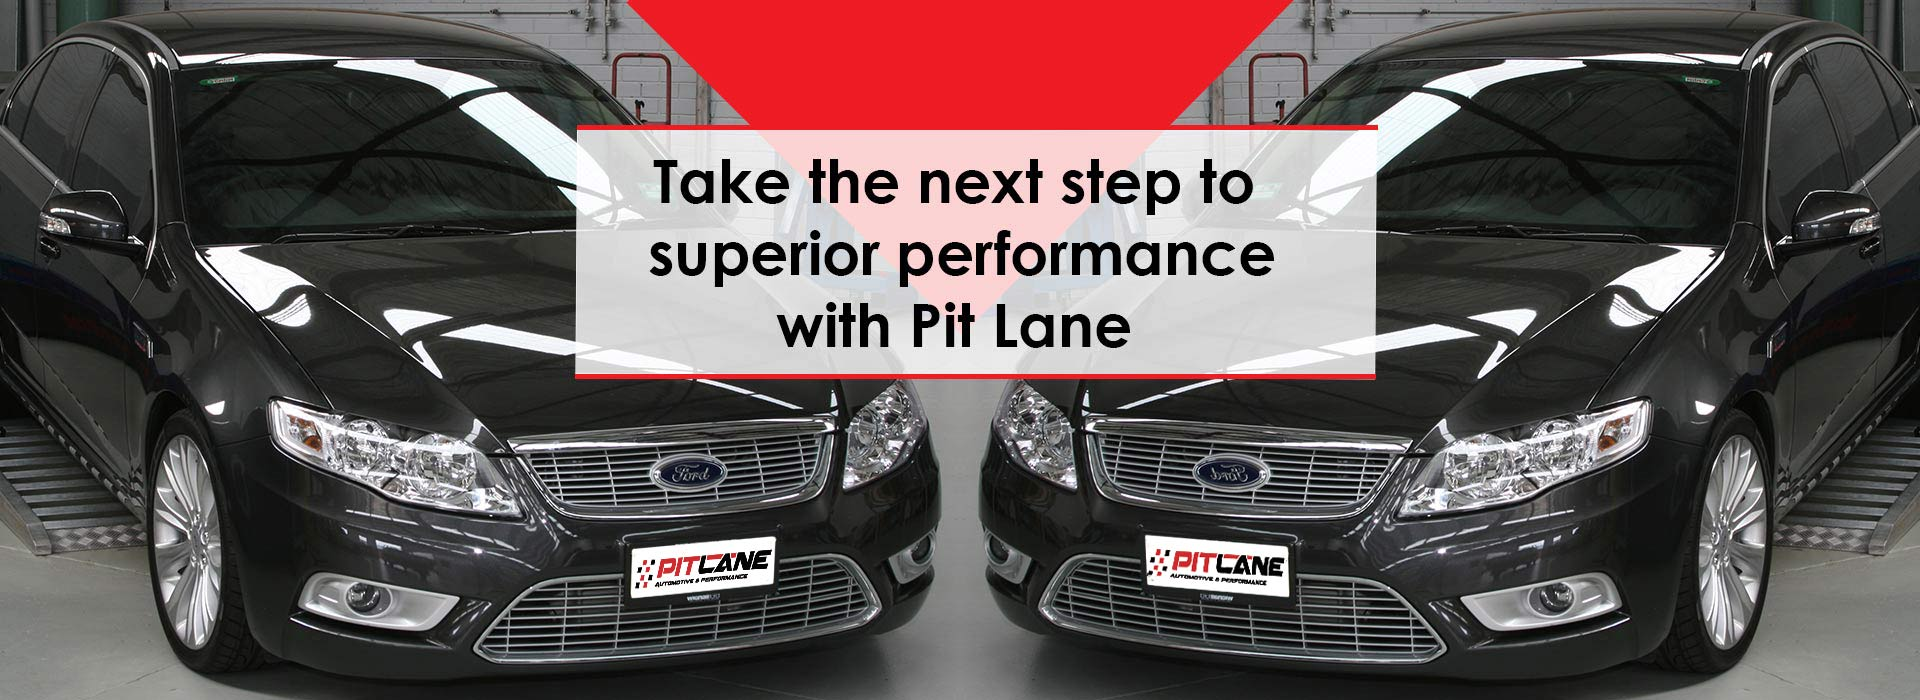 FG & FGX TURBO PACKAGES - Pit Lane